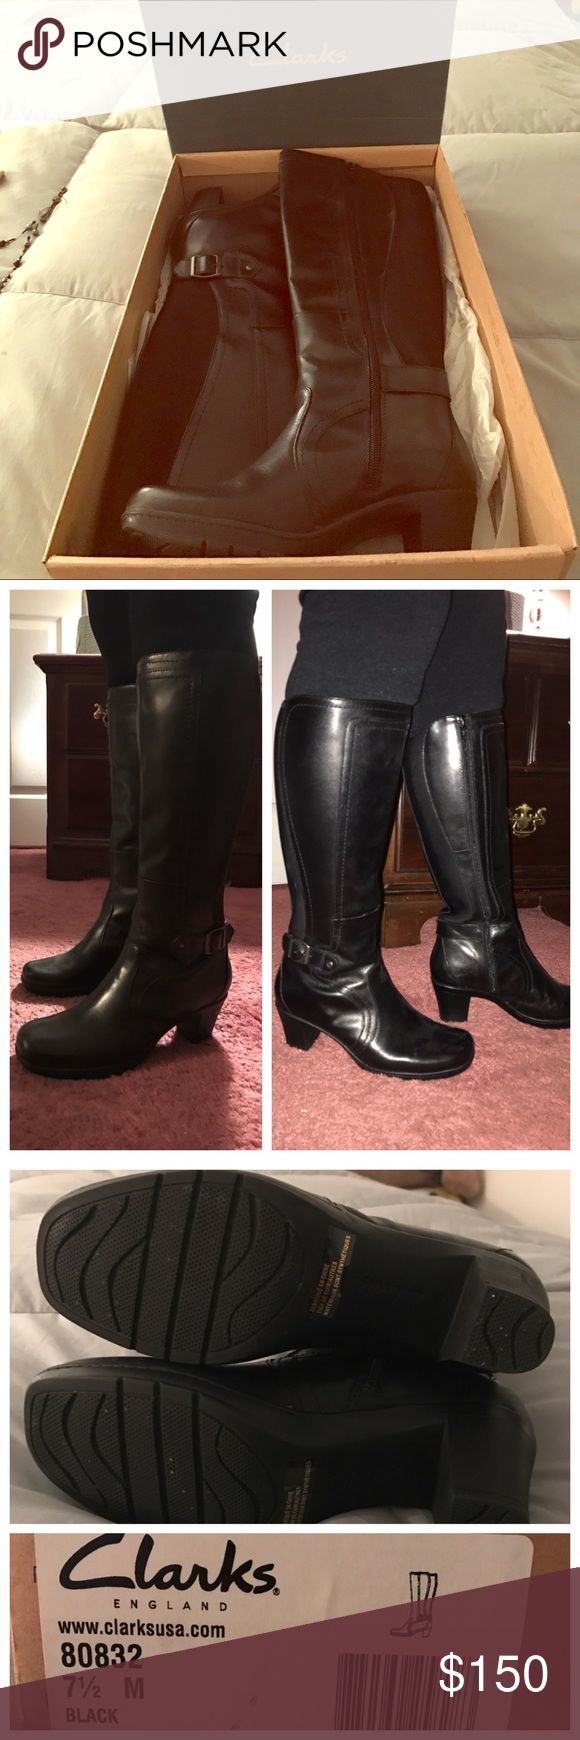 """❤️VDAY SALE! BNIB CLARKS BLACK LEATHER BOOTS OMG How beautiful are these! Brand new in box, never worn, these need a new home! Clarks is known for amazing quality leather, these do not disappoint! Super stylish but still comfortable with 2 1/2"""" heel. Shaft height is 13 1/2"""" from base of the sole. Regular calf width, not wide nor slim. Silver hardware. Please ask any/all questions before purchasing, happy to help! These are my mom's boots, she does not NEED to sell them, so please no…"""